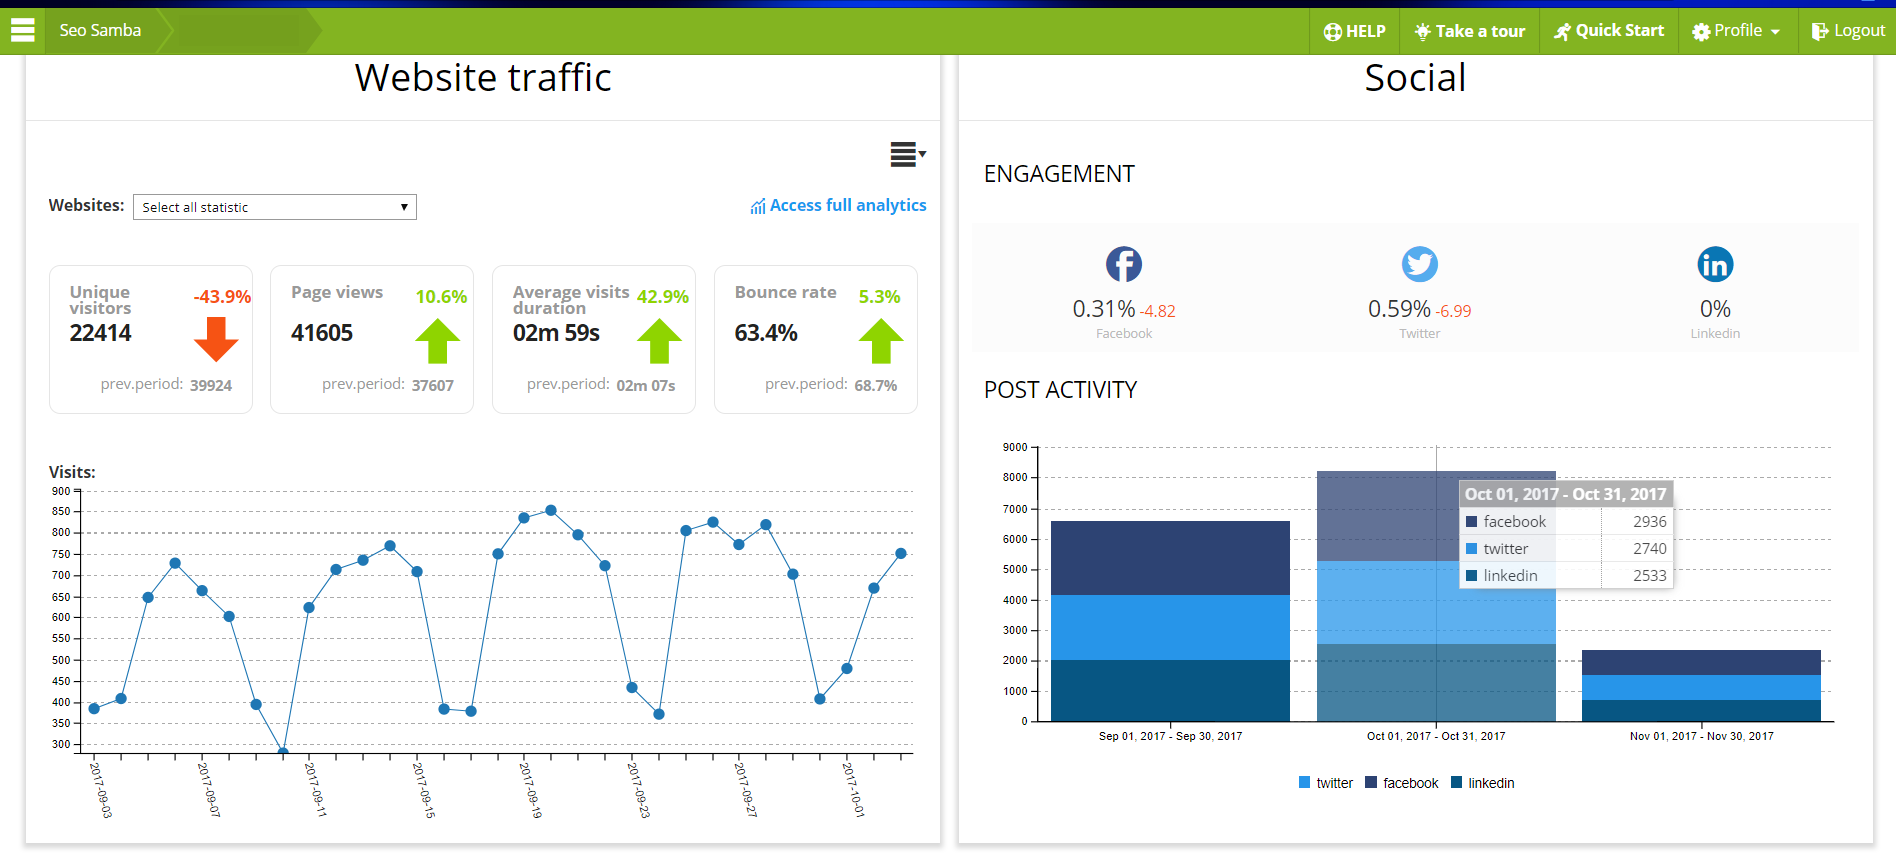 SeoSamba analytics works in conjunction with Google Analytics for High level website traffic data